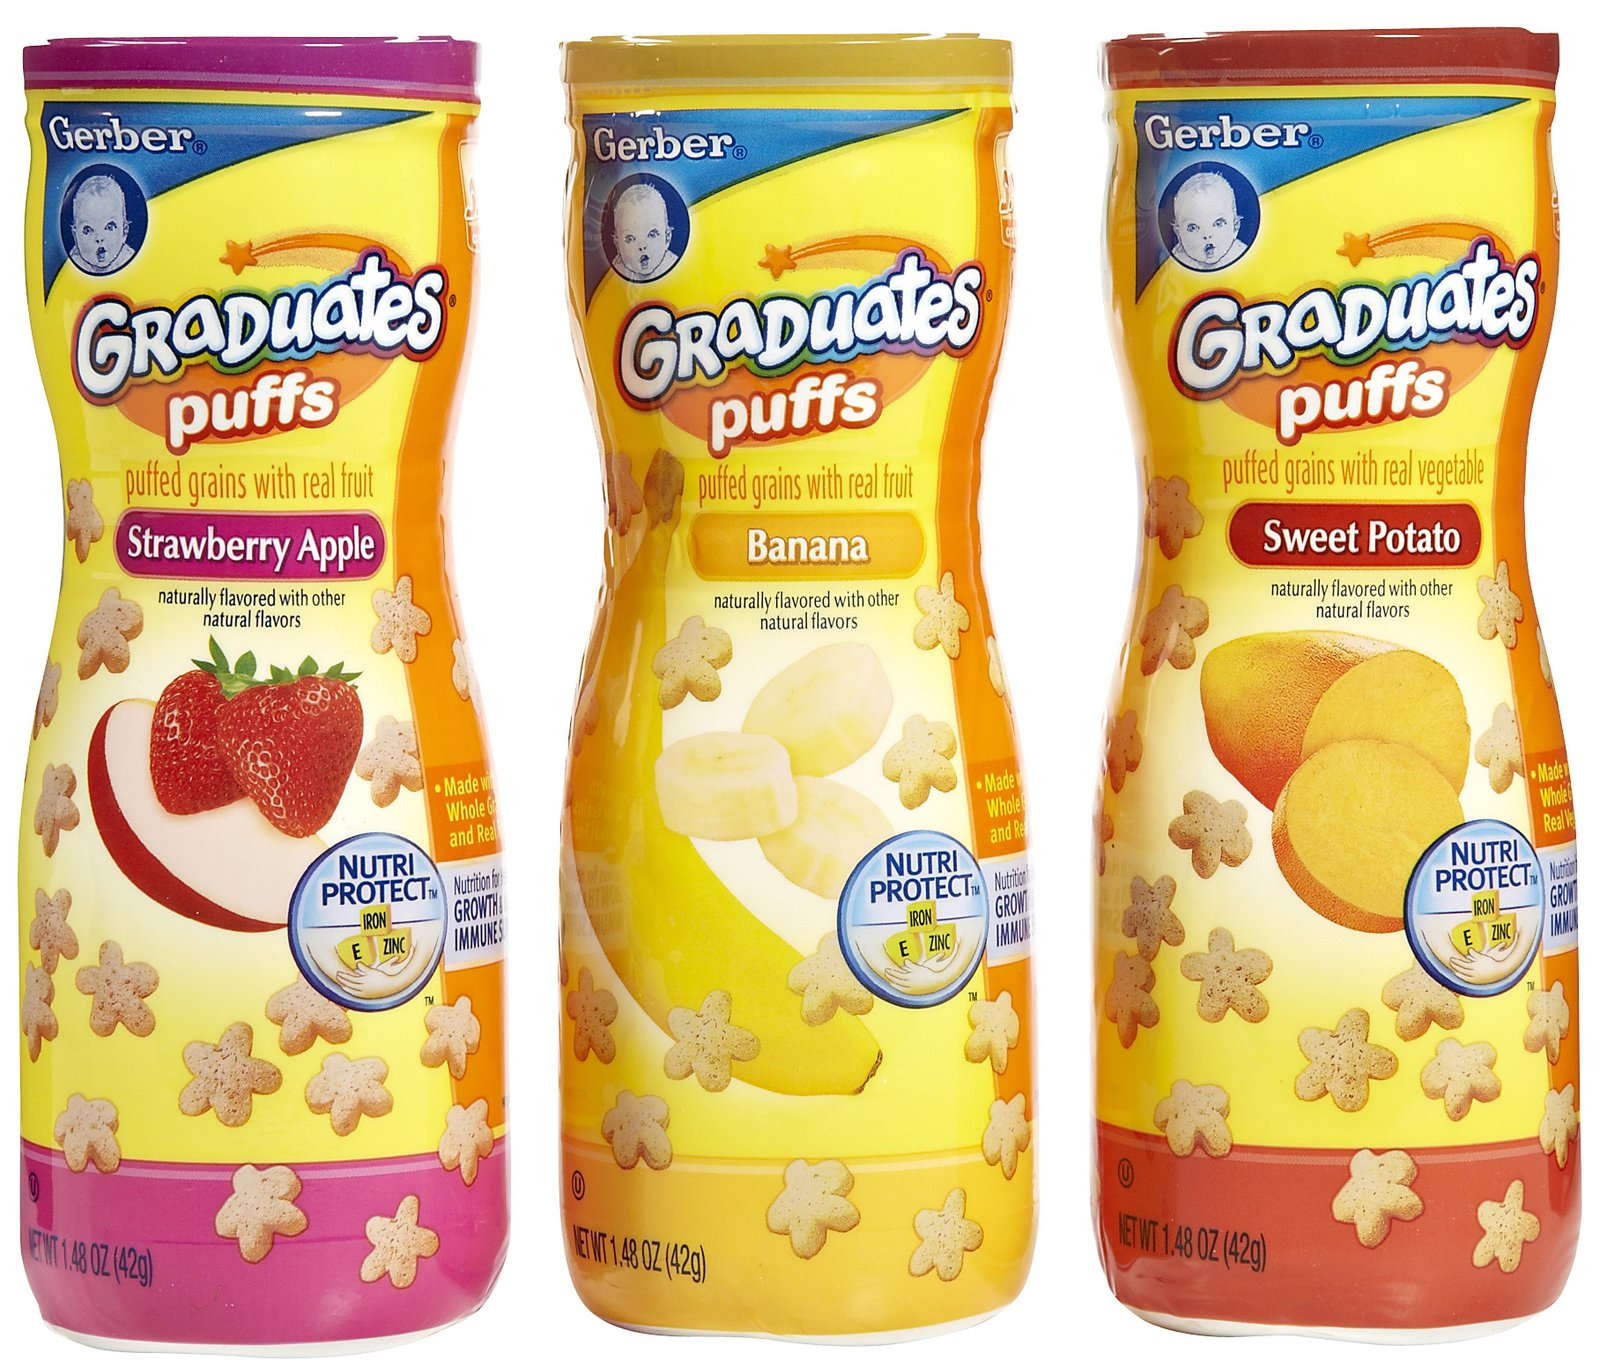 Save Over $4.00 In Gerber Coupons